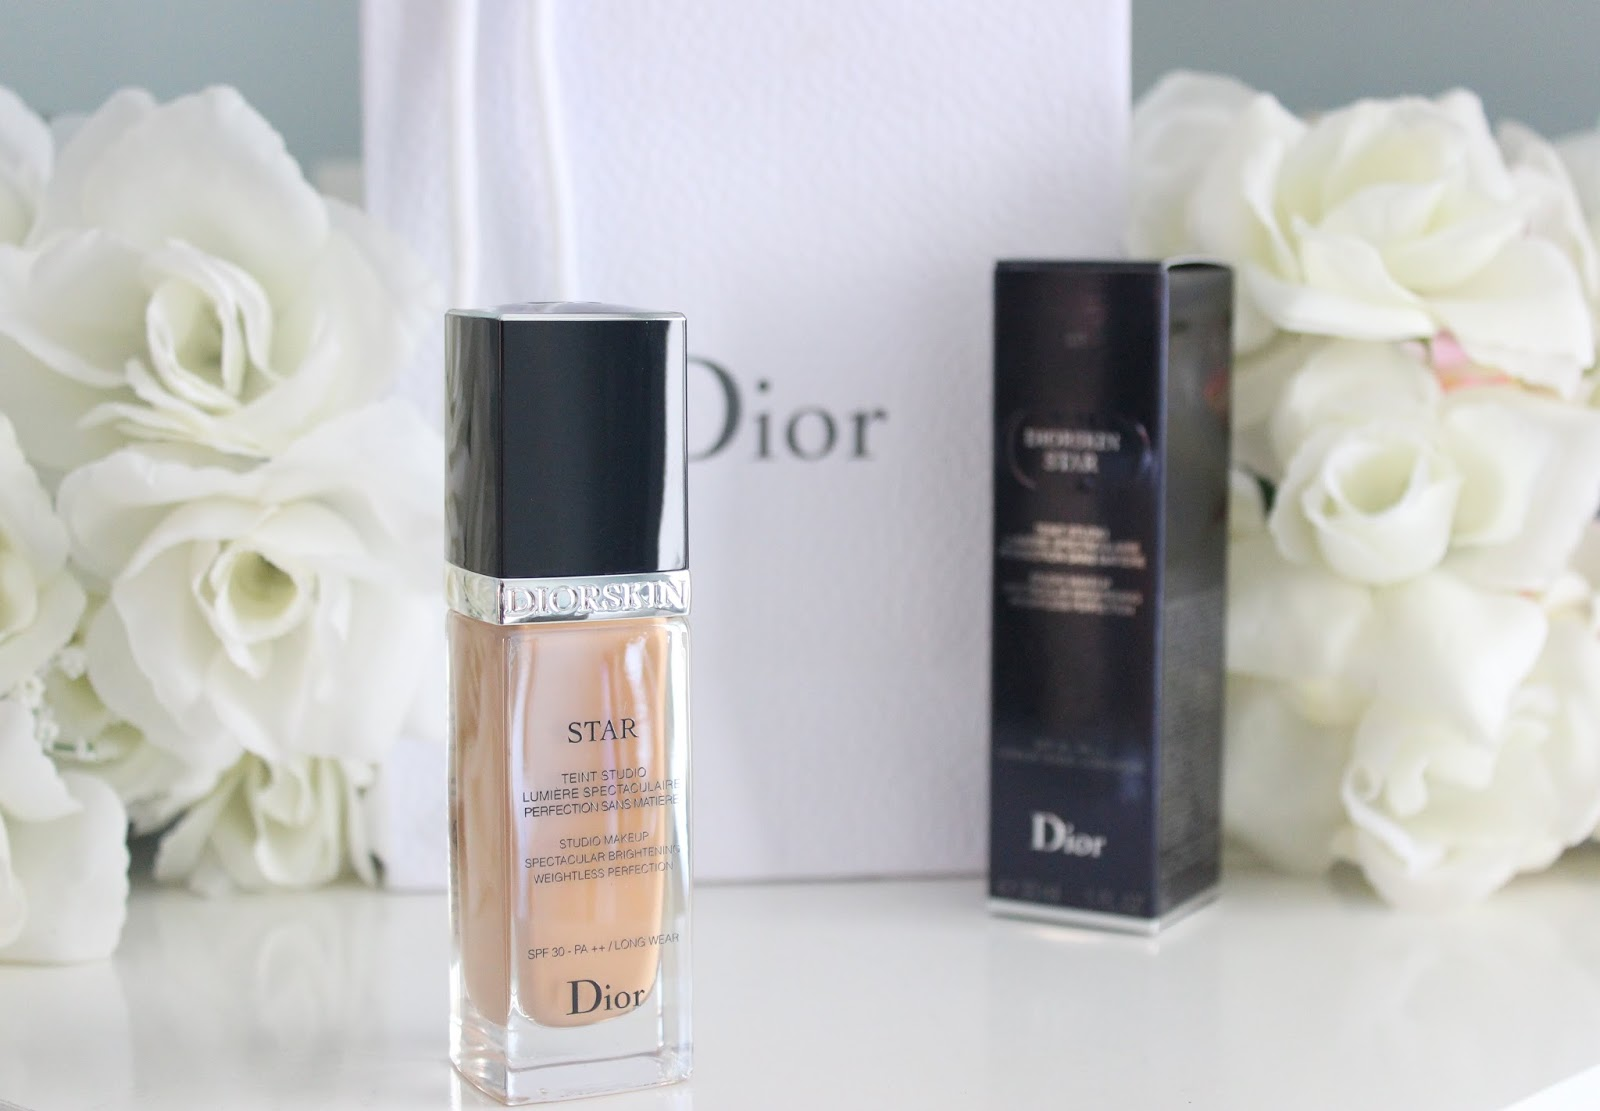 Dior Star Foundation Swatches shade 31